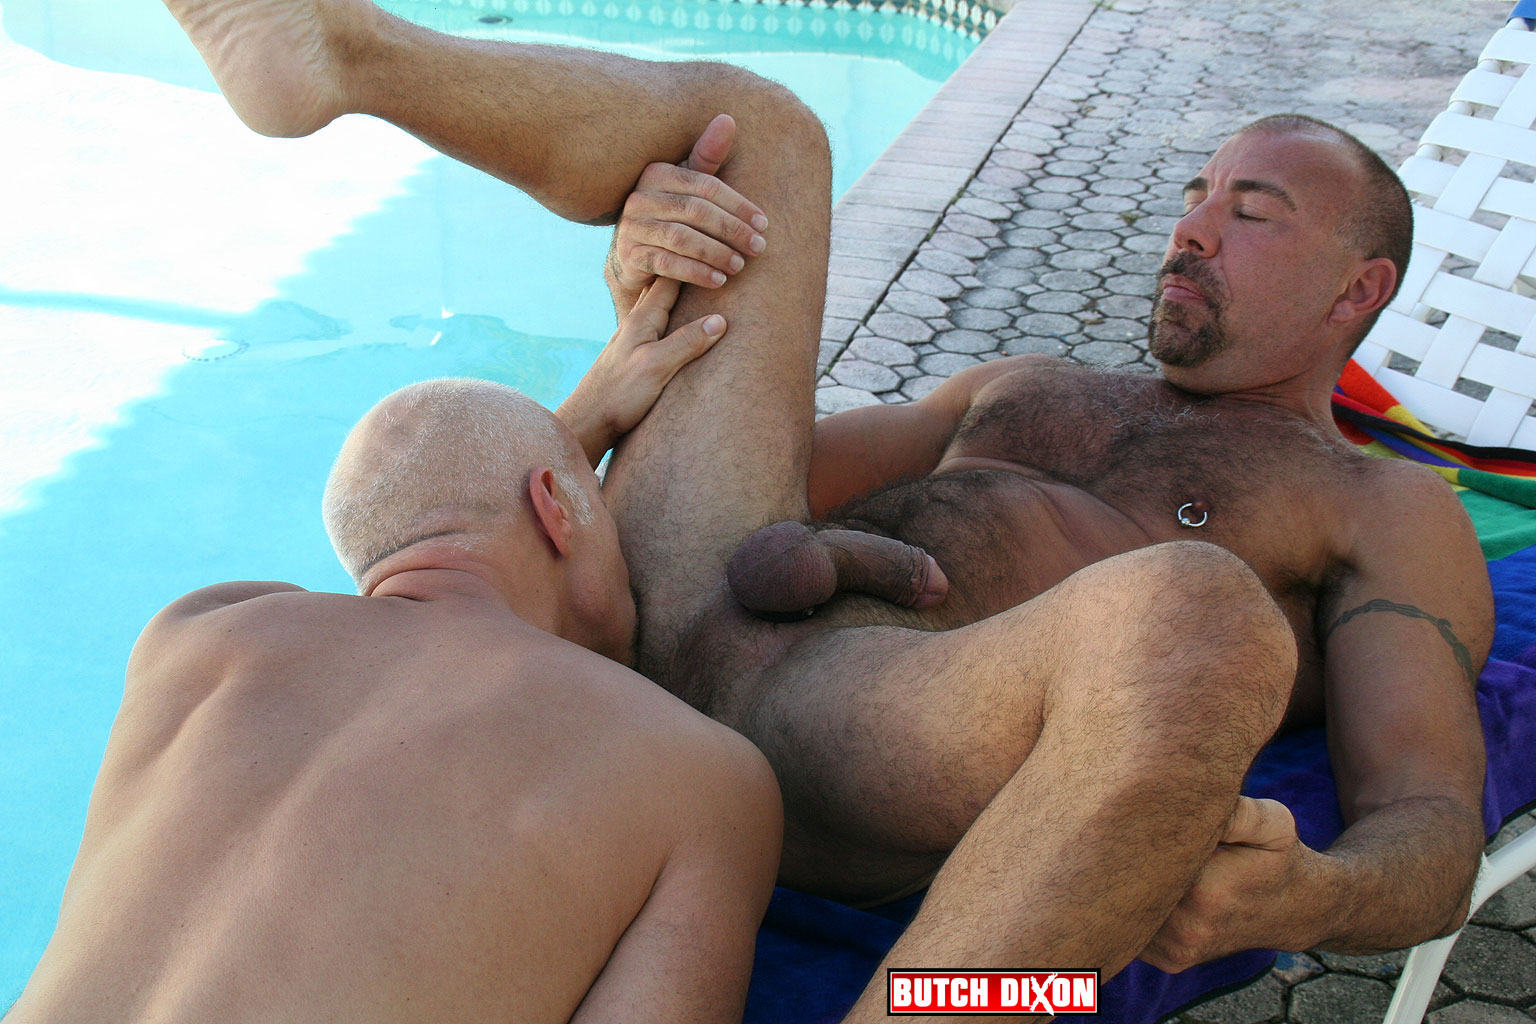 Butch Dixon Max Dunhill and Jason Proud Hairy Daddies Fucking With Big Cocks Amateur Gay Porn 14 Real Life Hairy Daddy Boyfriends Fucking With Their Big Cocks